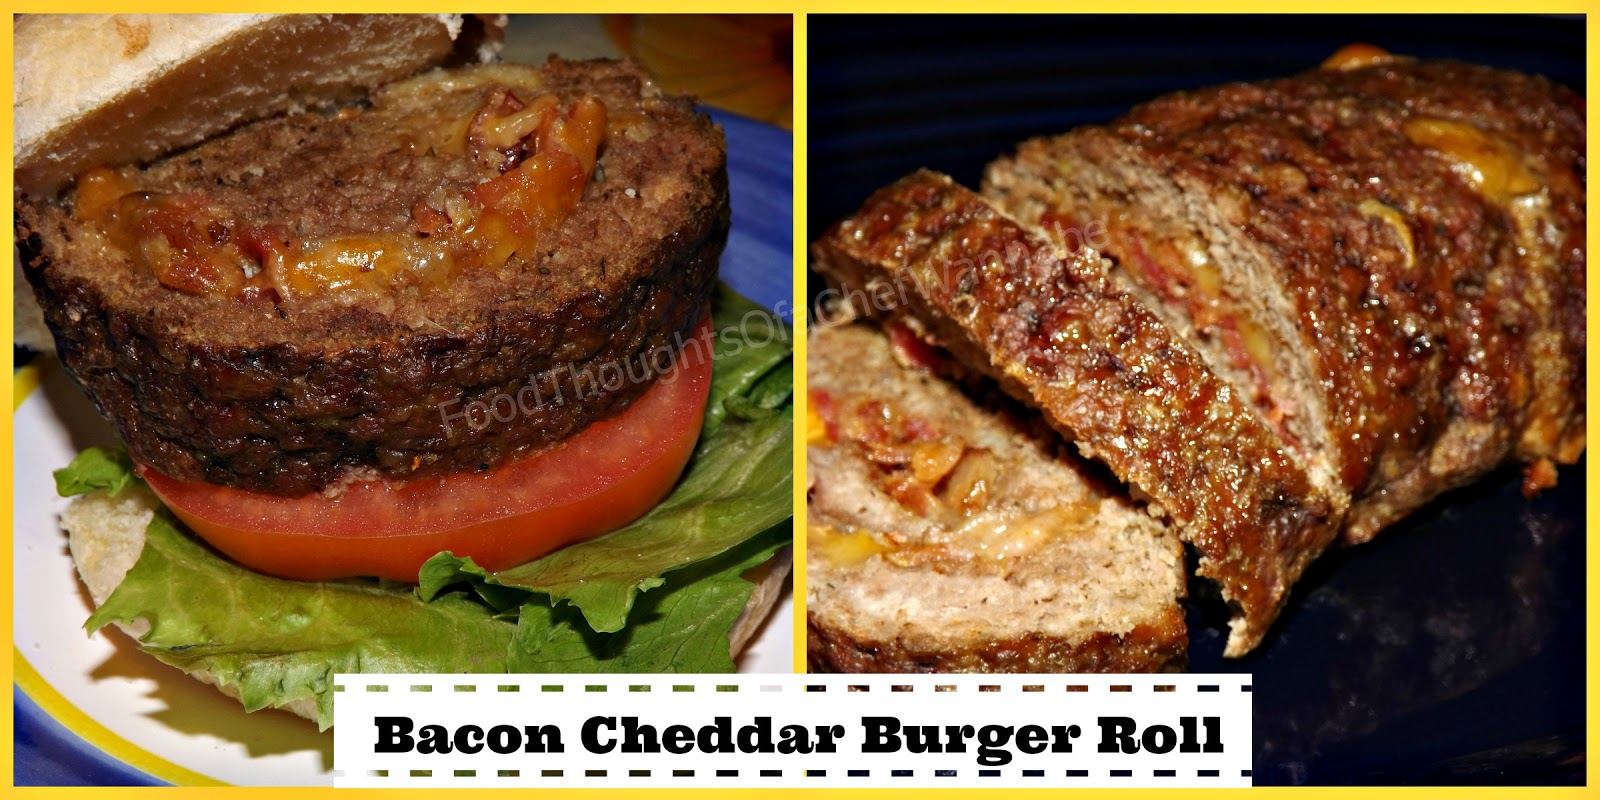 FoodThoughtsOfaChefWannabe: Bacon Cheddar Burger Roll